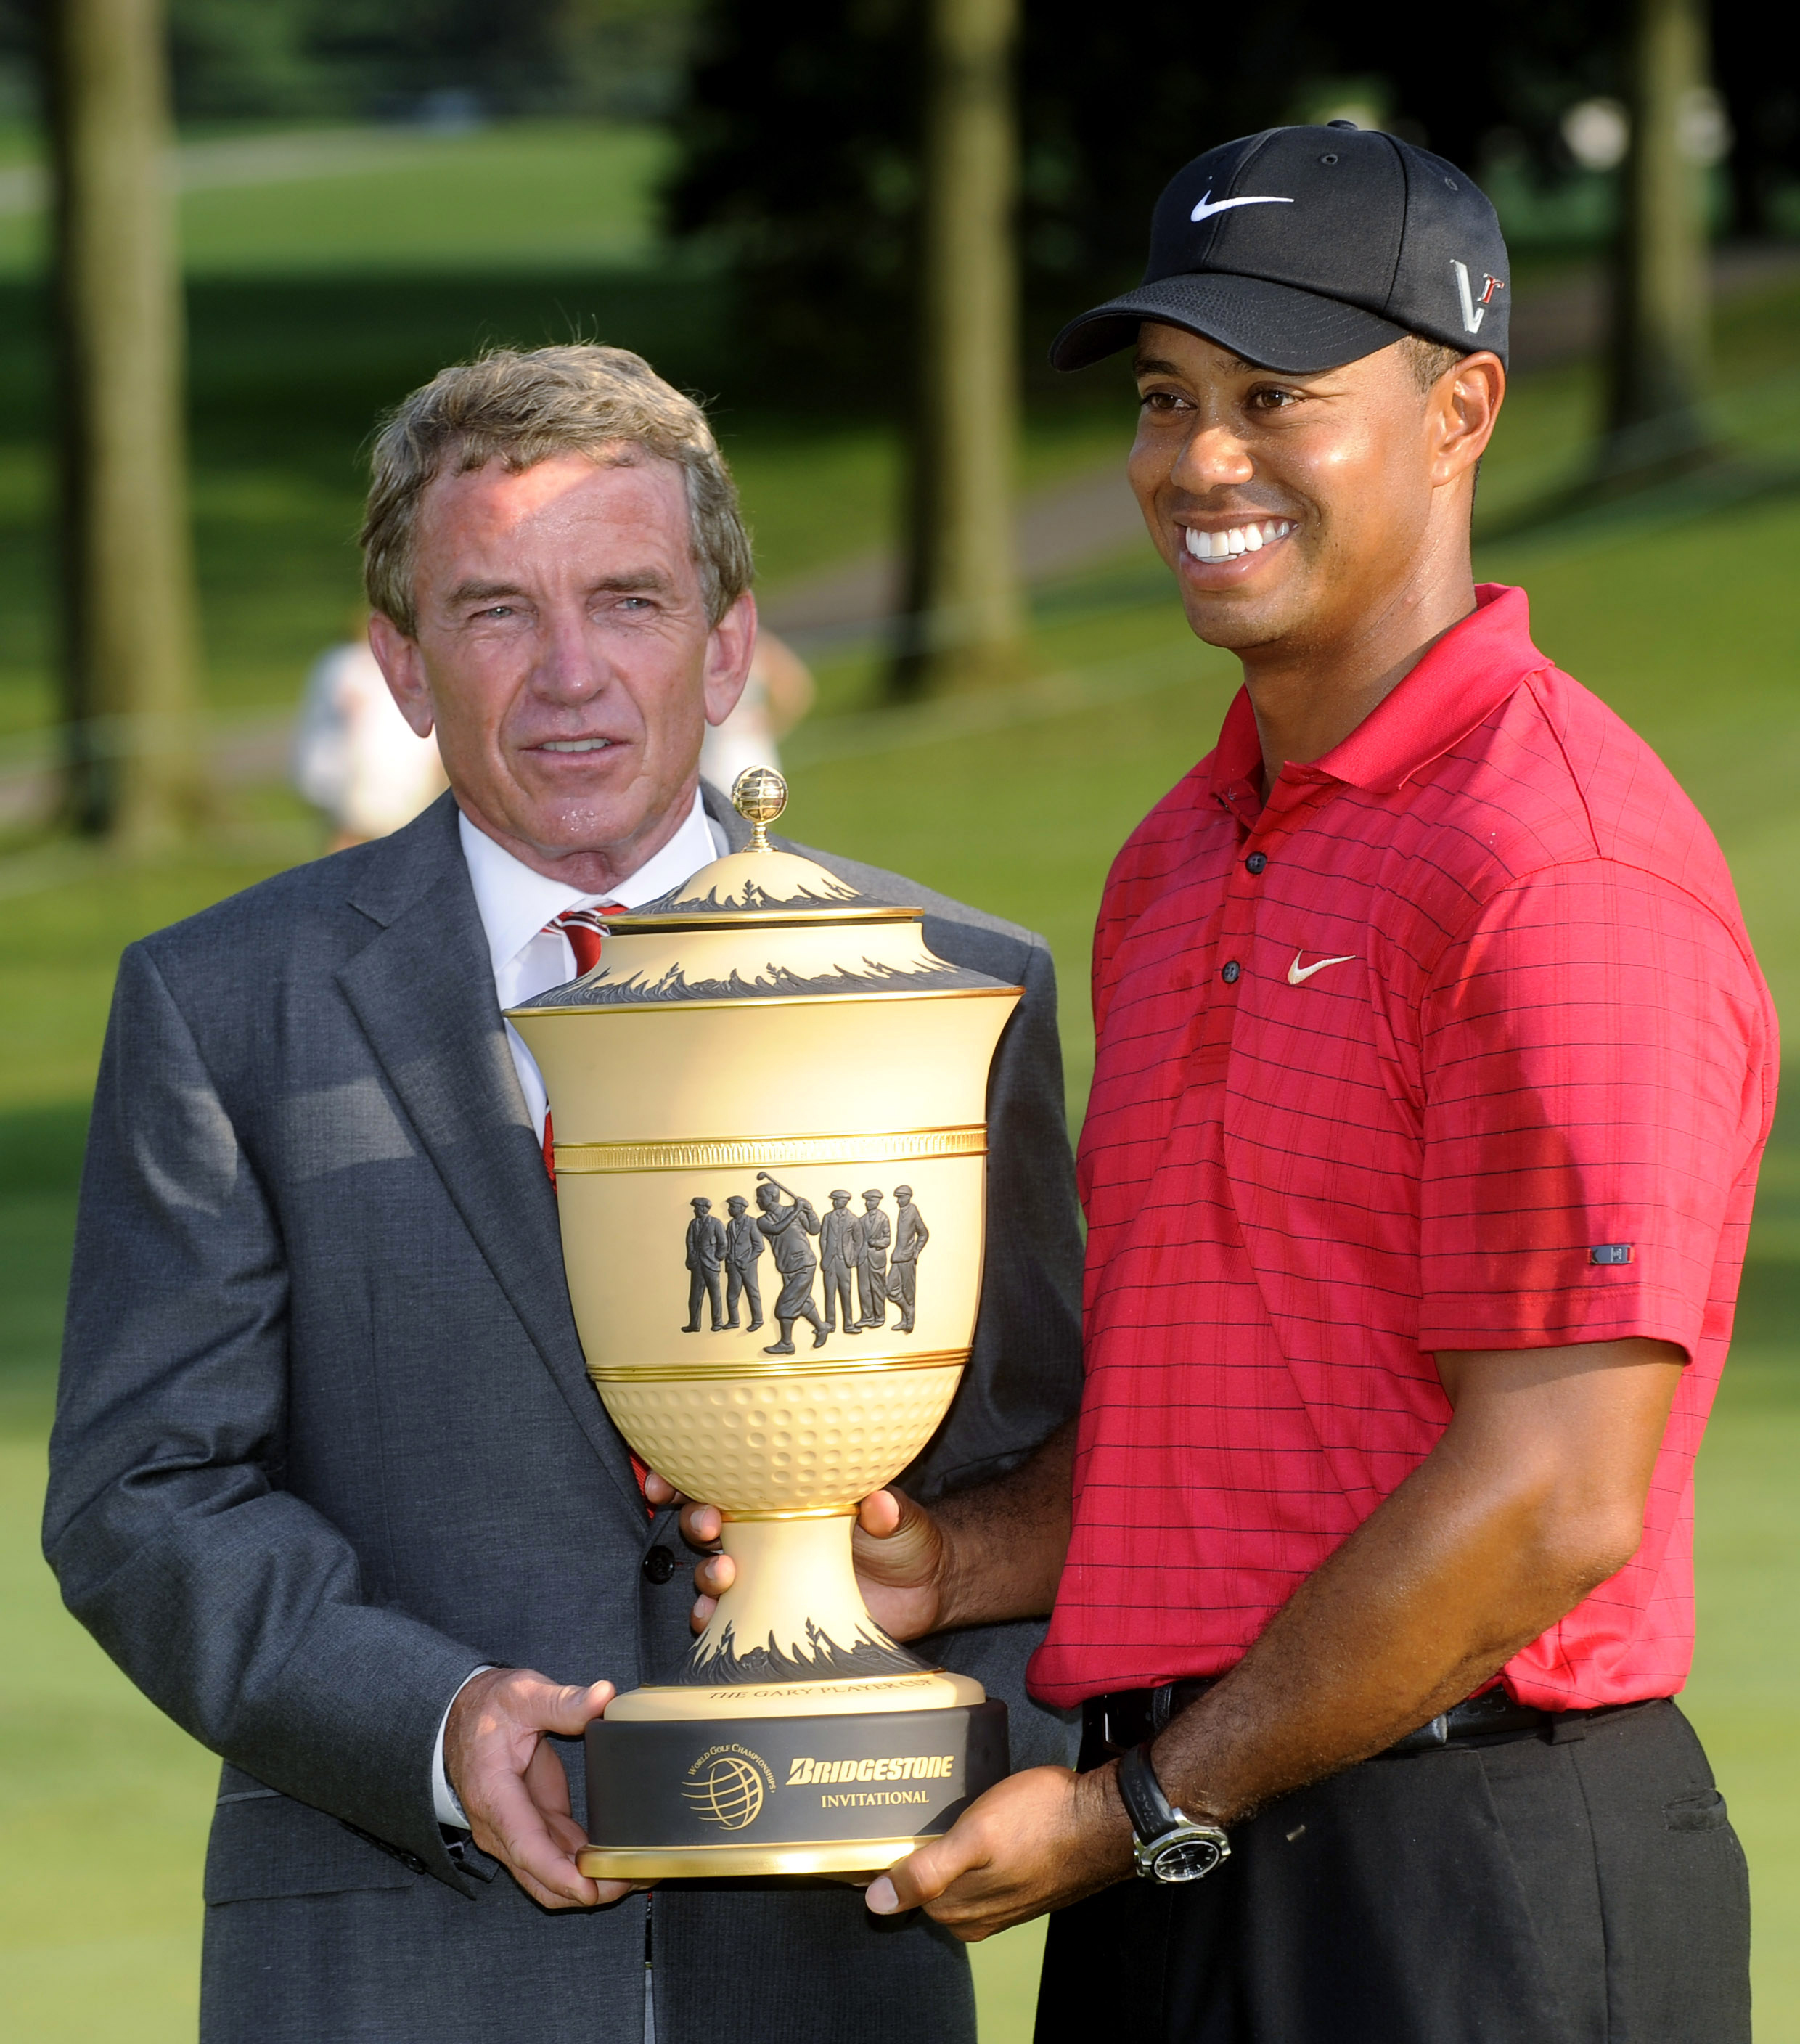 Tiger Woods and Tim Finchem after Woods won the 2009 Bridgestone Invitational.